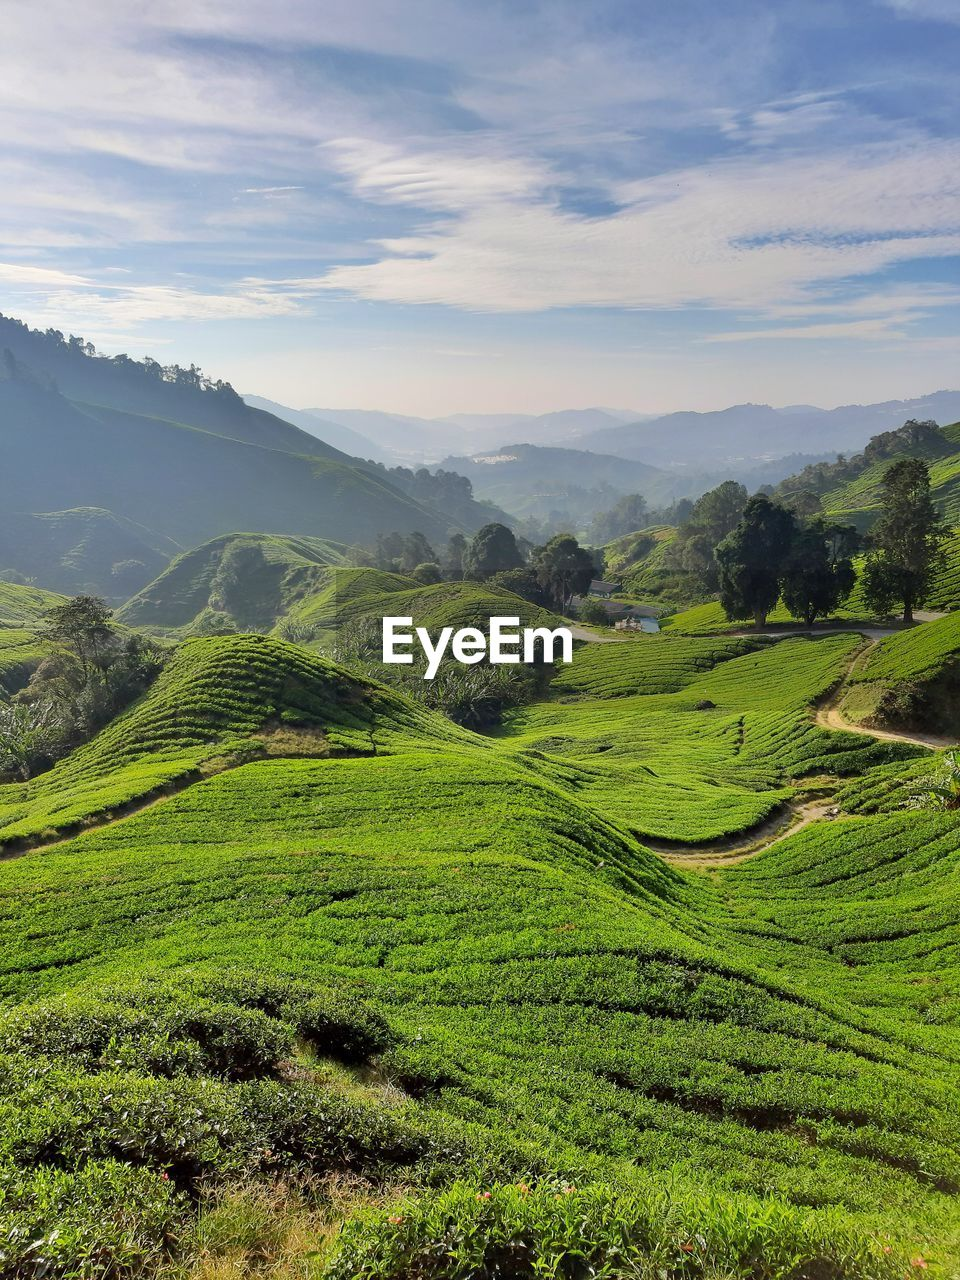 scenics - nature, landscape, beauty in nature, tranquil scene, tranquility, environment, green color, sky, plant, cloud - sky, mountain, land, growth, non-urban scene, no people, agriculture, nature, field, rural scene, tree, mountain range, outdoors, tea crop, rolling landscape, plantation